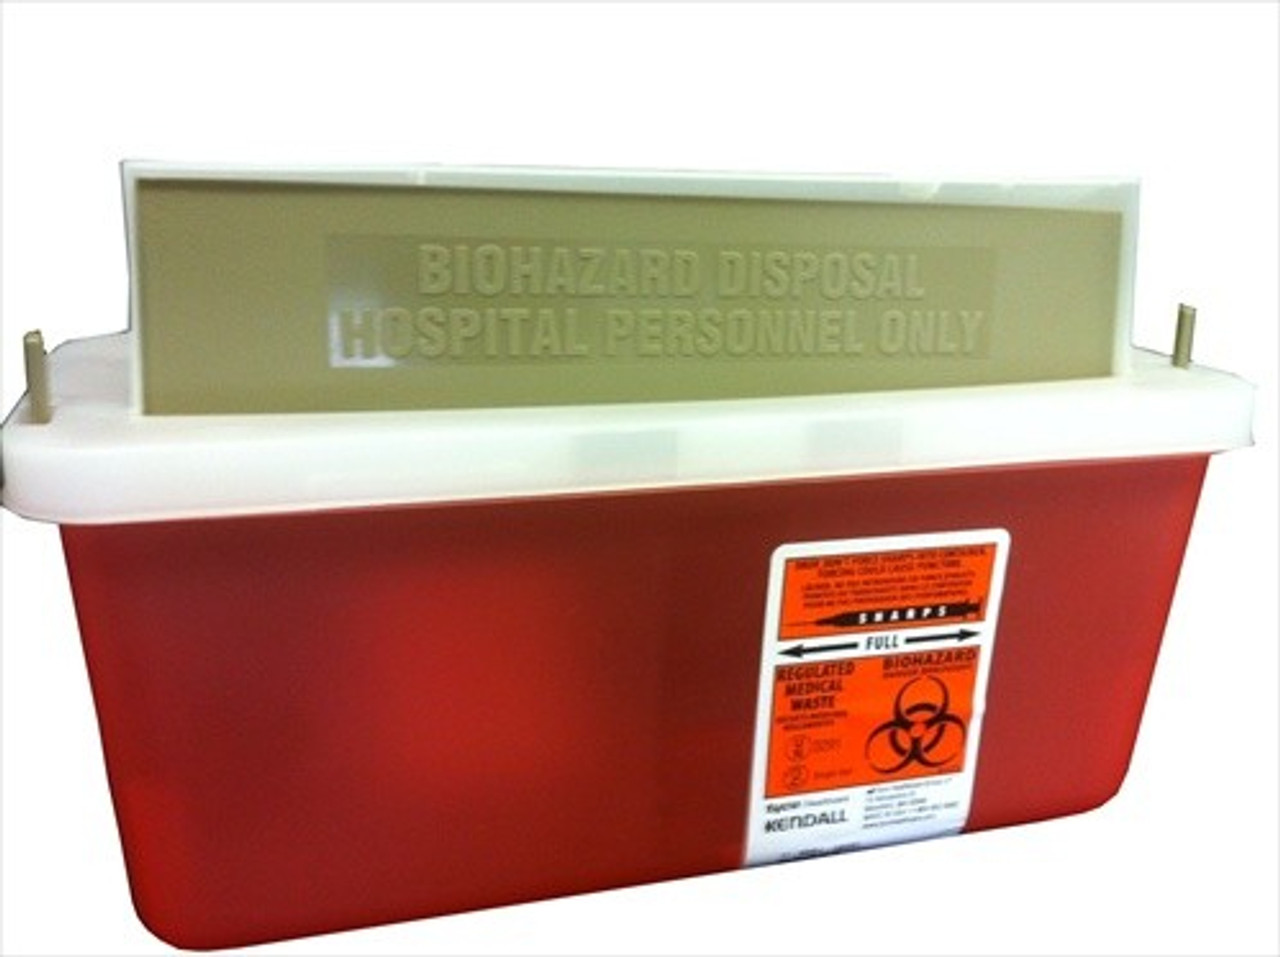 2 Quart (0.5 Gallon) Sharps Container #8503  by Kendall